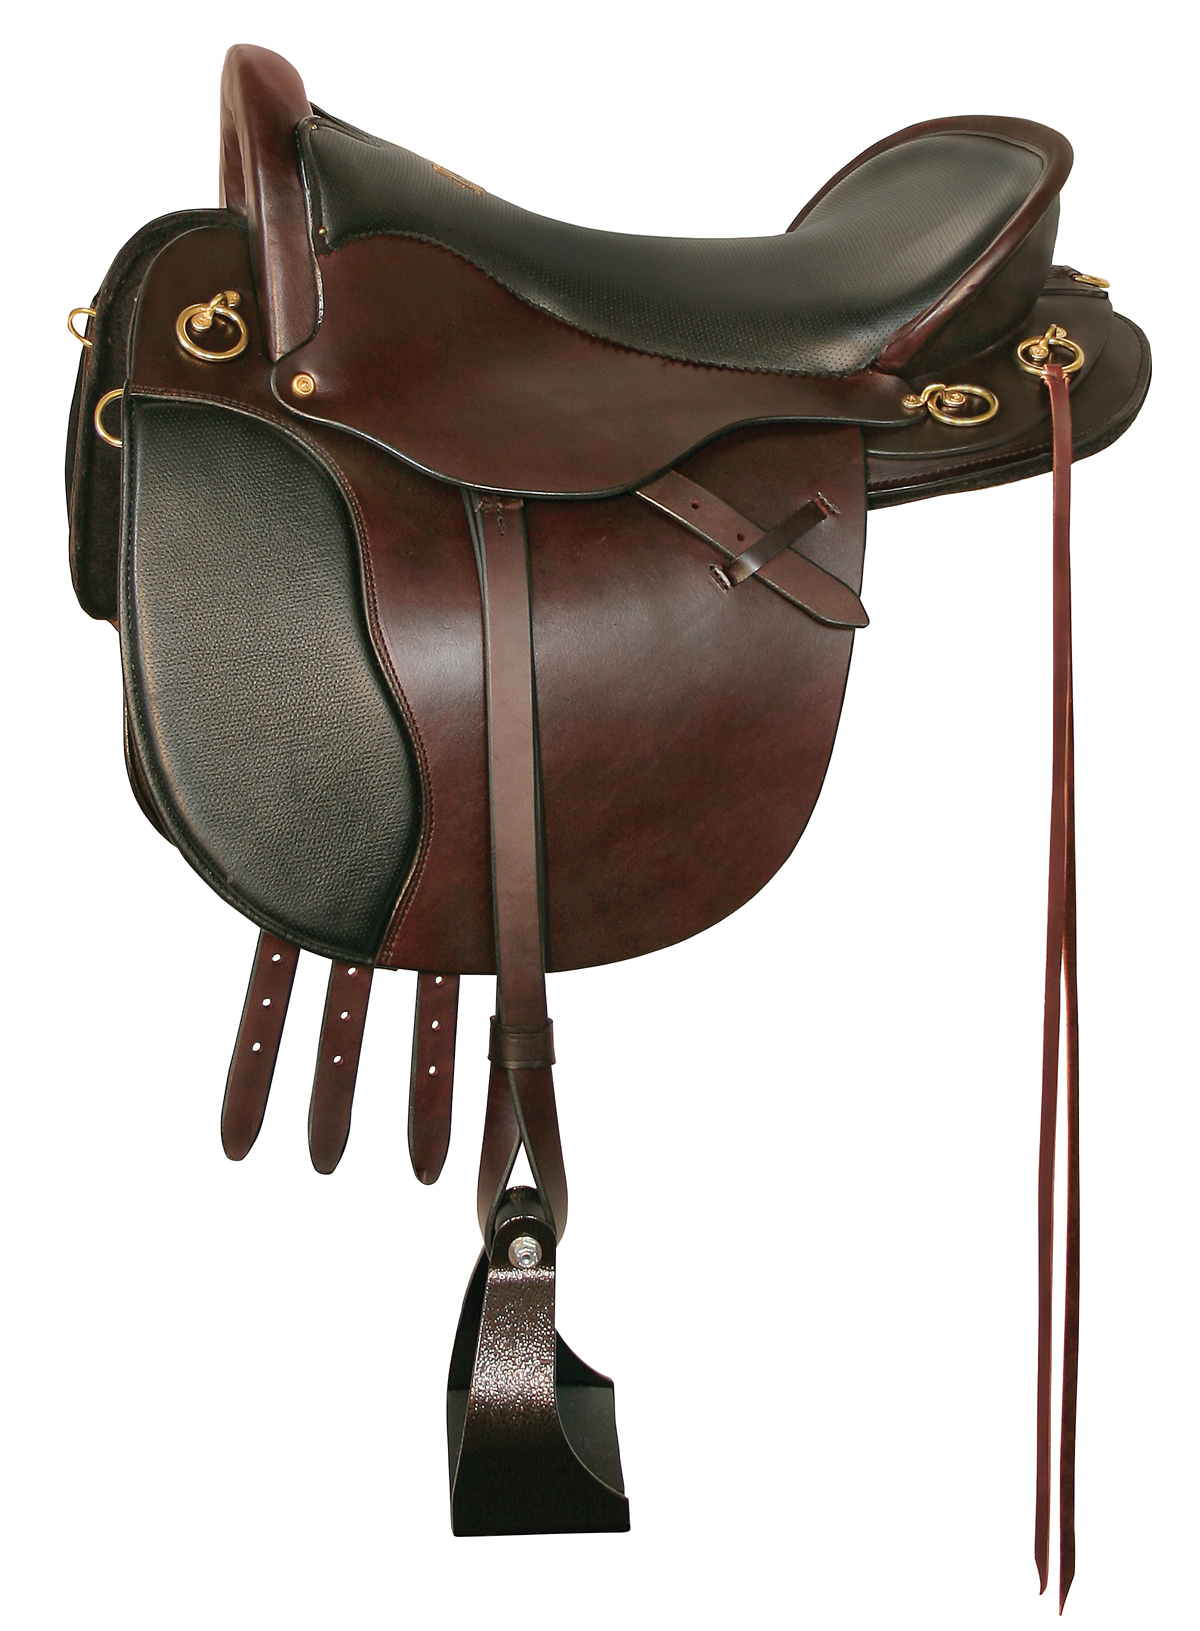 TUCKER Gen II Equitation Endurance Trail Saddle